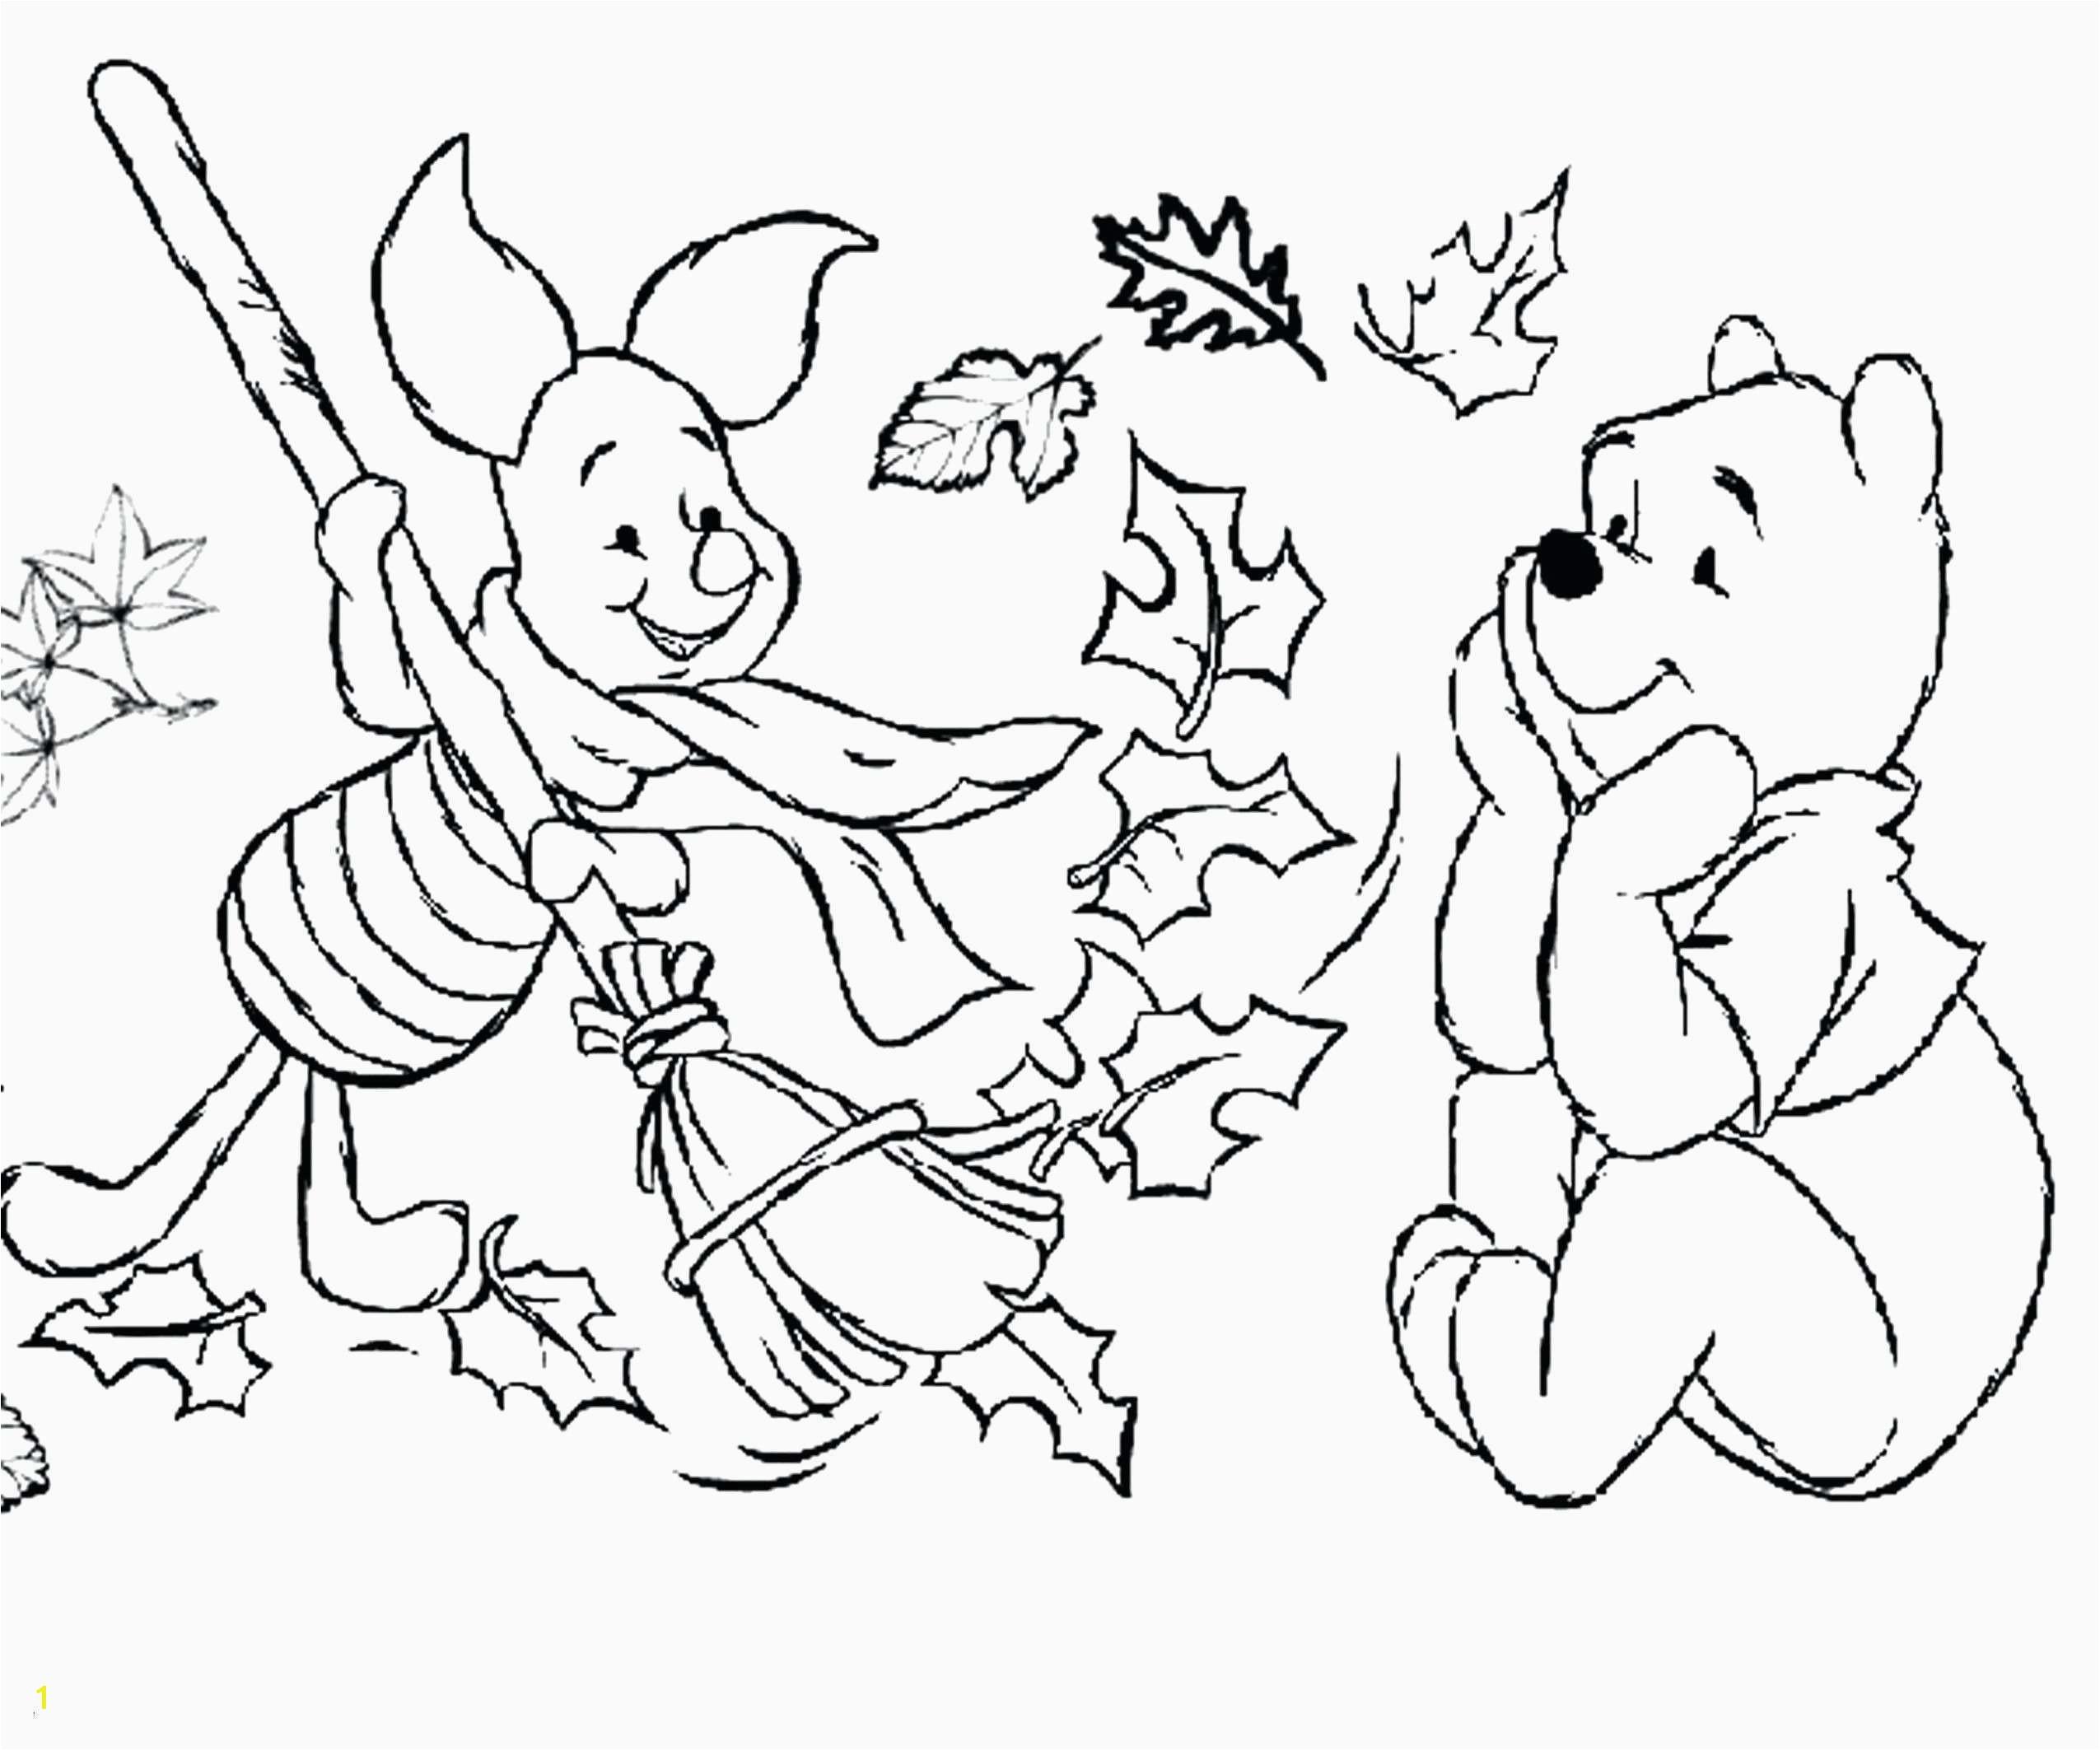 Moon Coloring Pages for Preschoolers 21 Disney Coloring Pages Princess Free Coloring Sheets